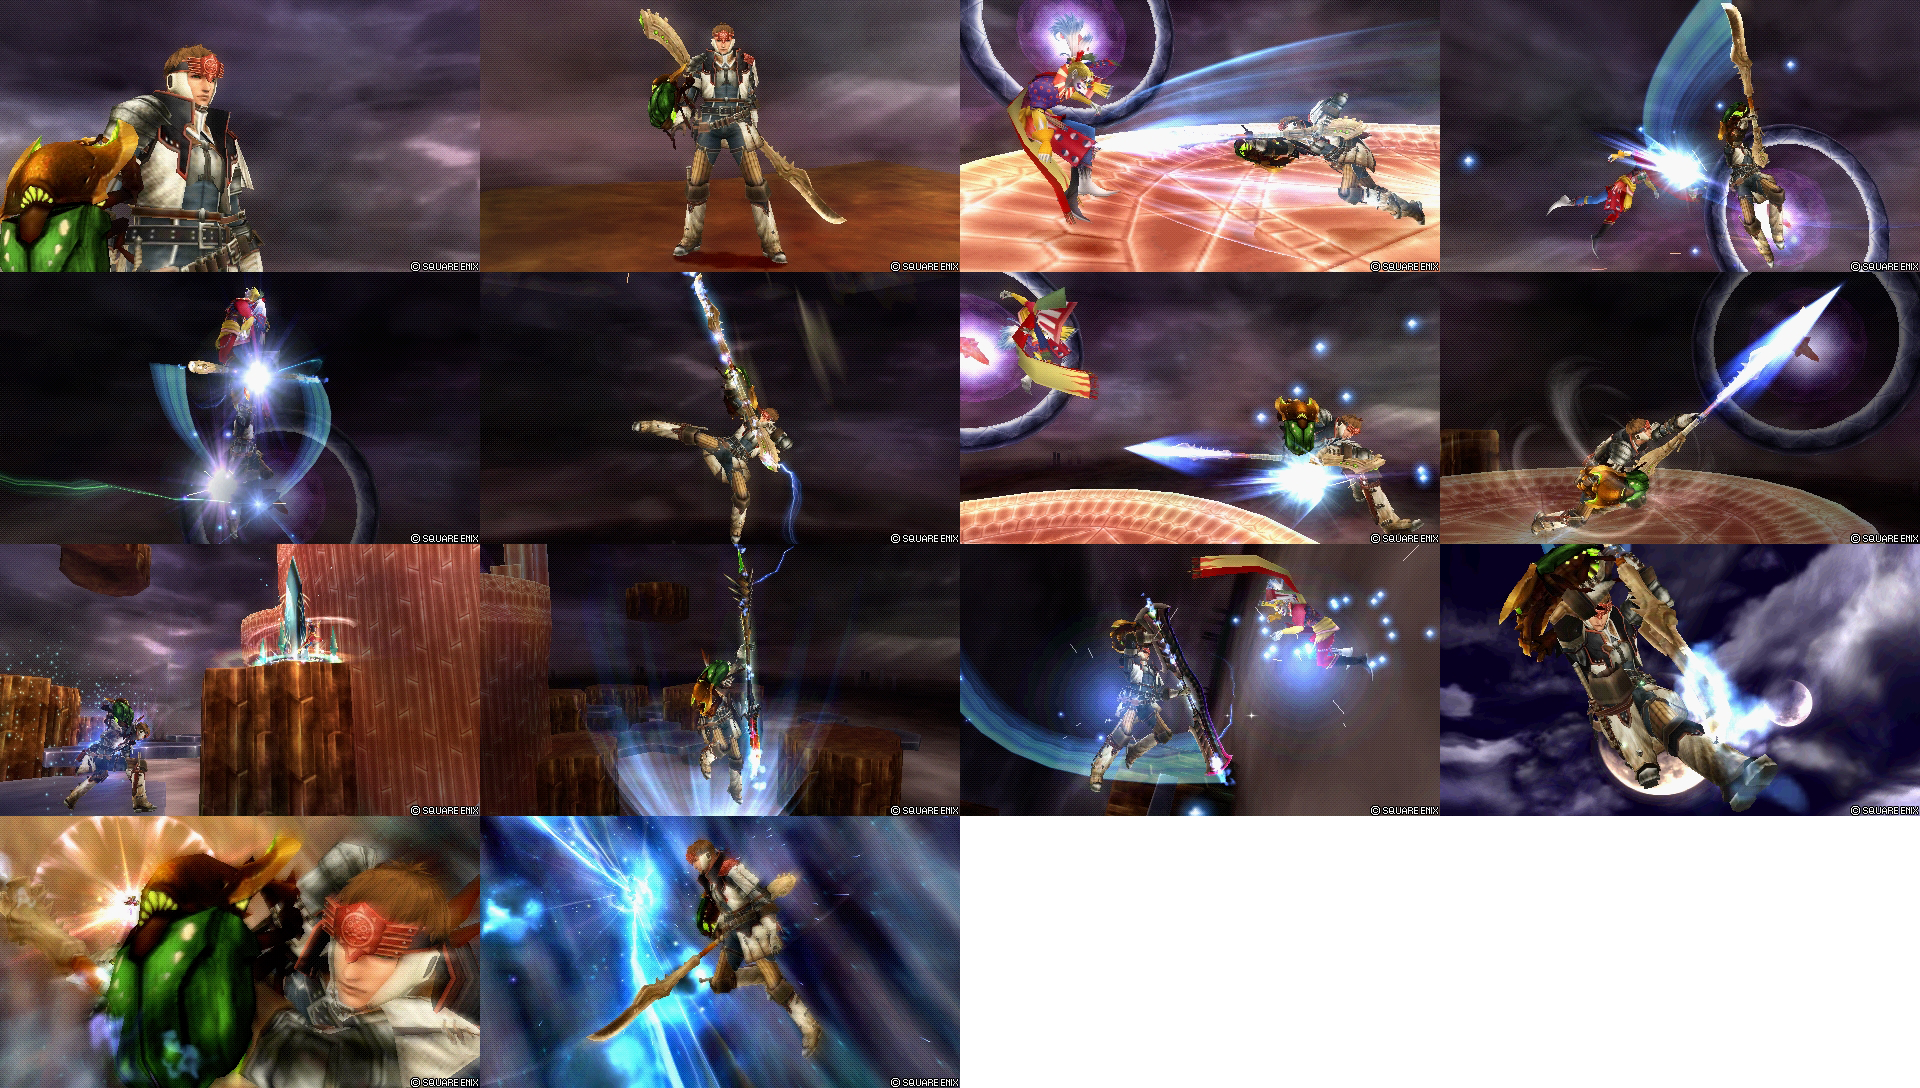 dissidia_012_mods__derring_hunter__mhgen